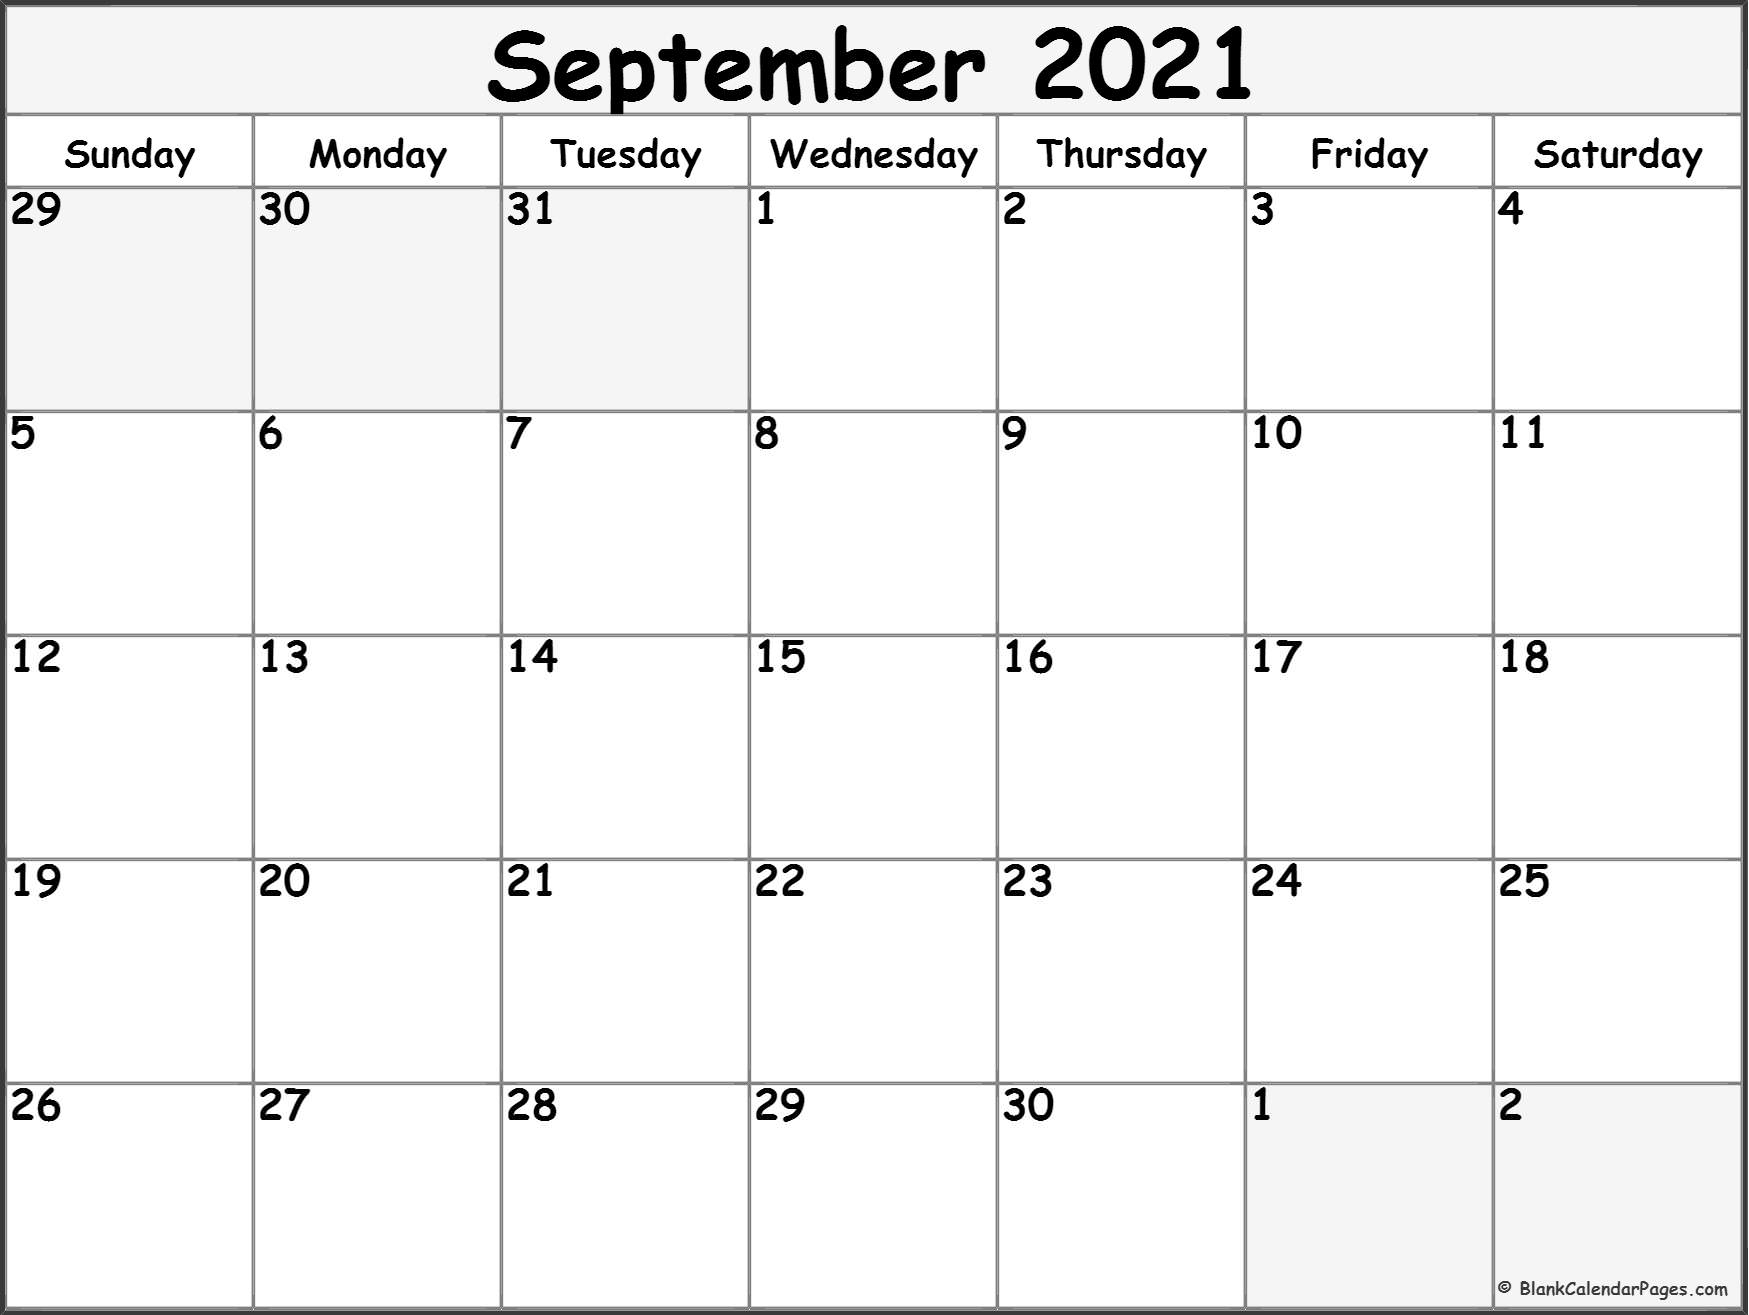 September 2021 Calendar | Free Printable Monthly Calendars